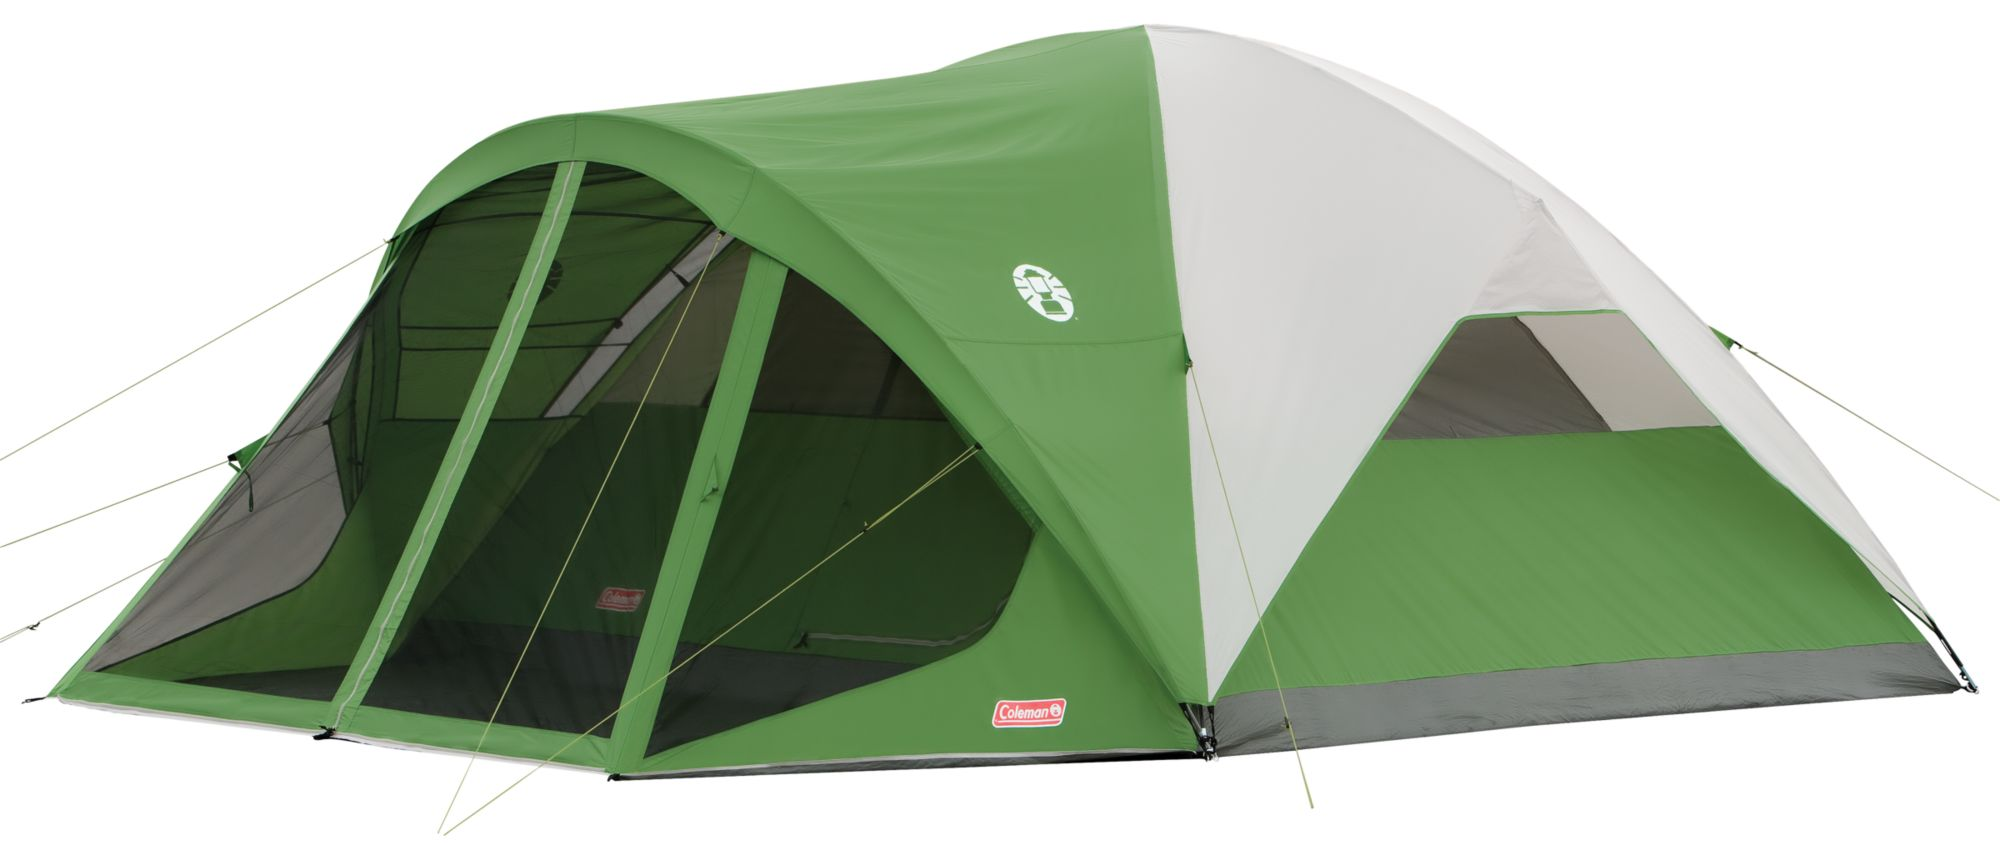 8 person tent screened tents coleman